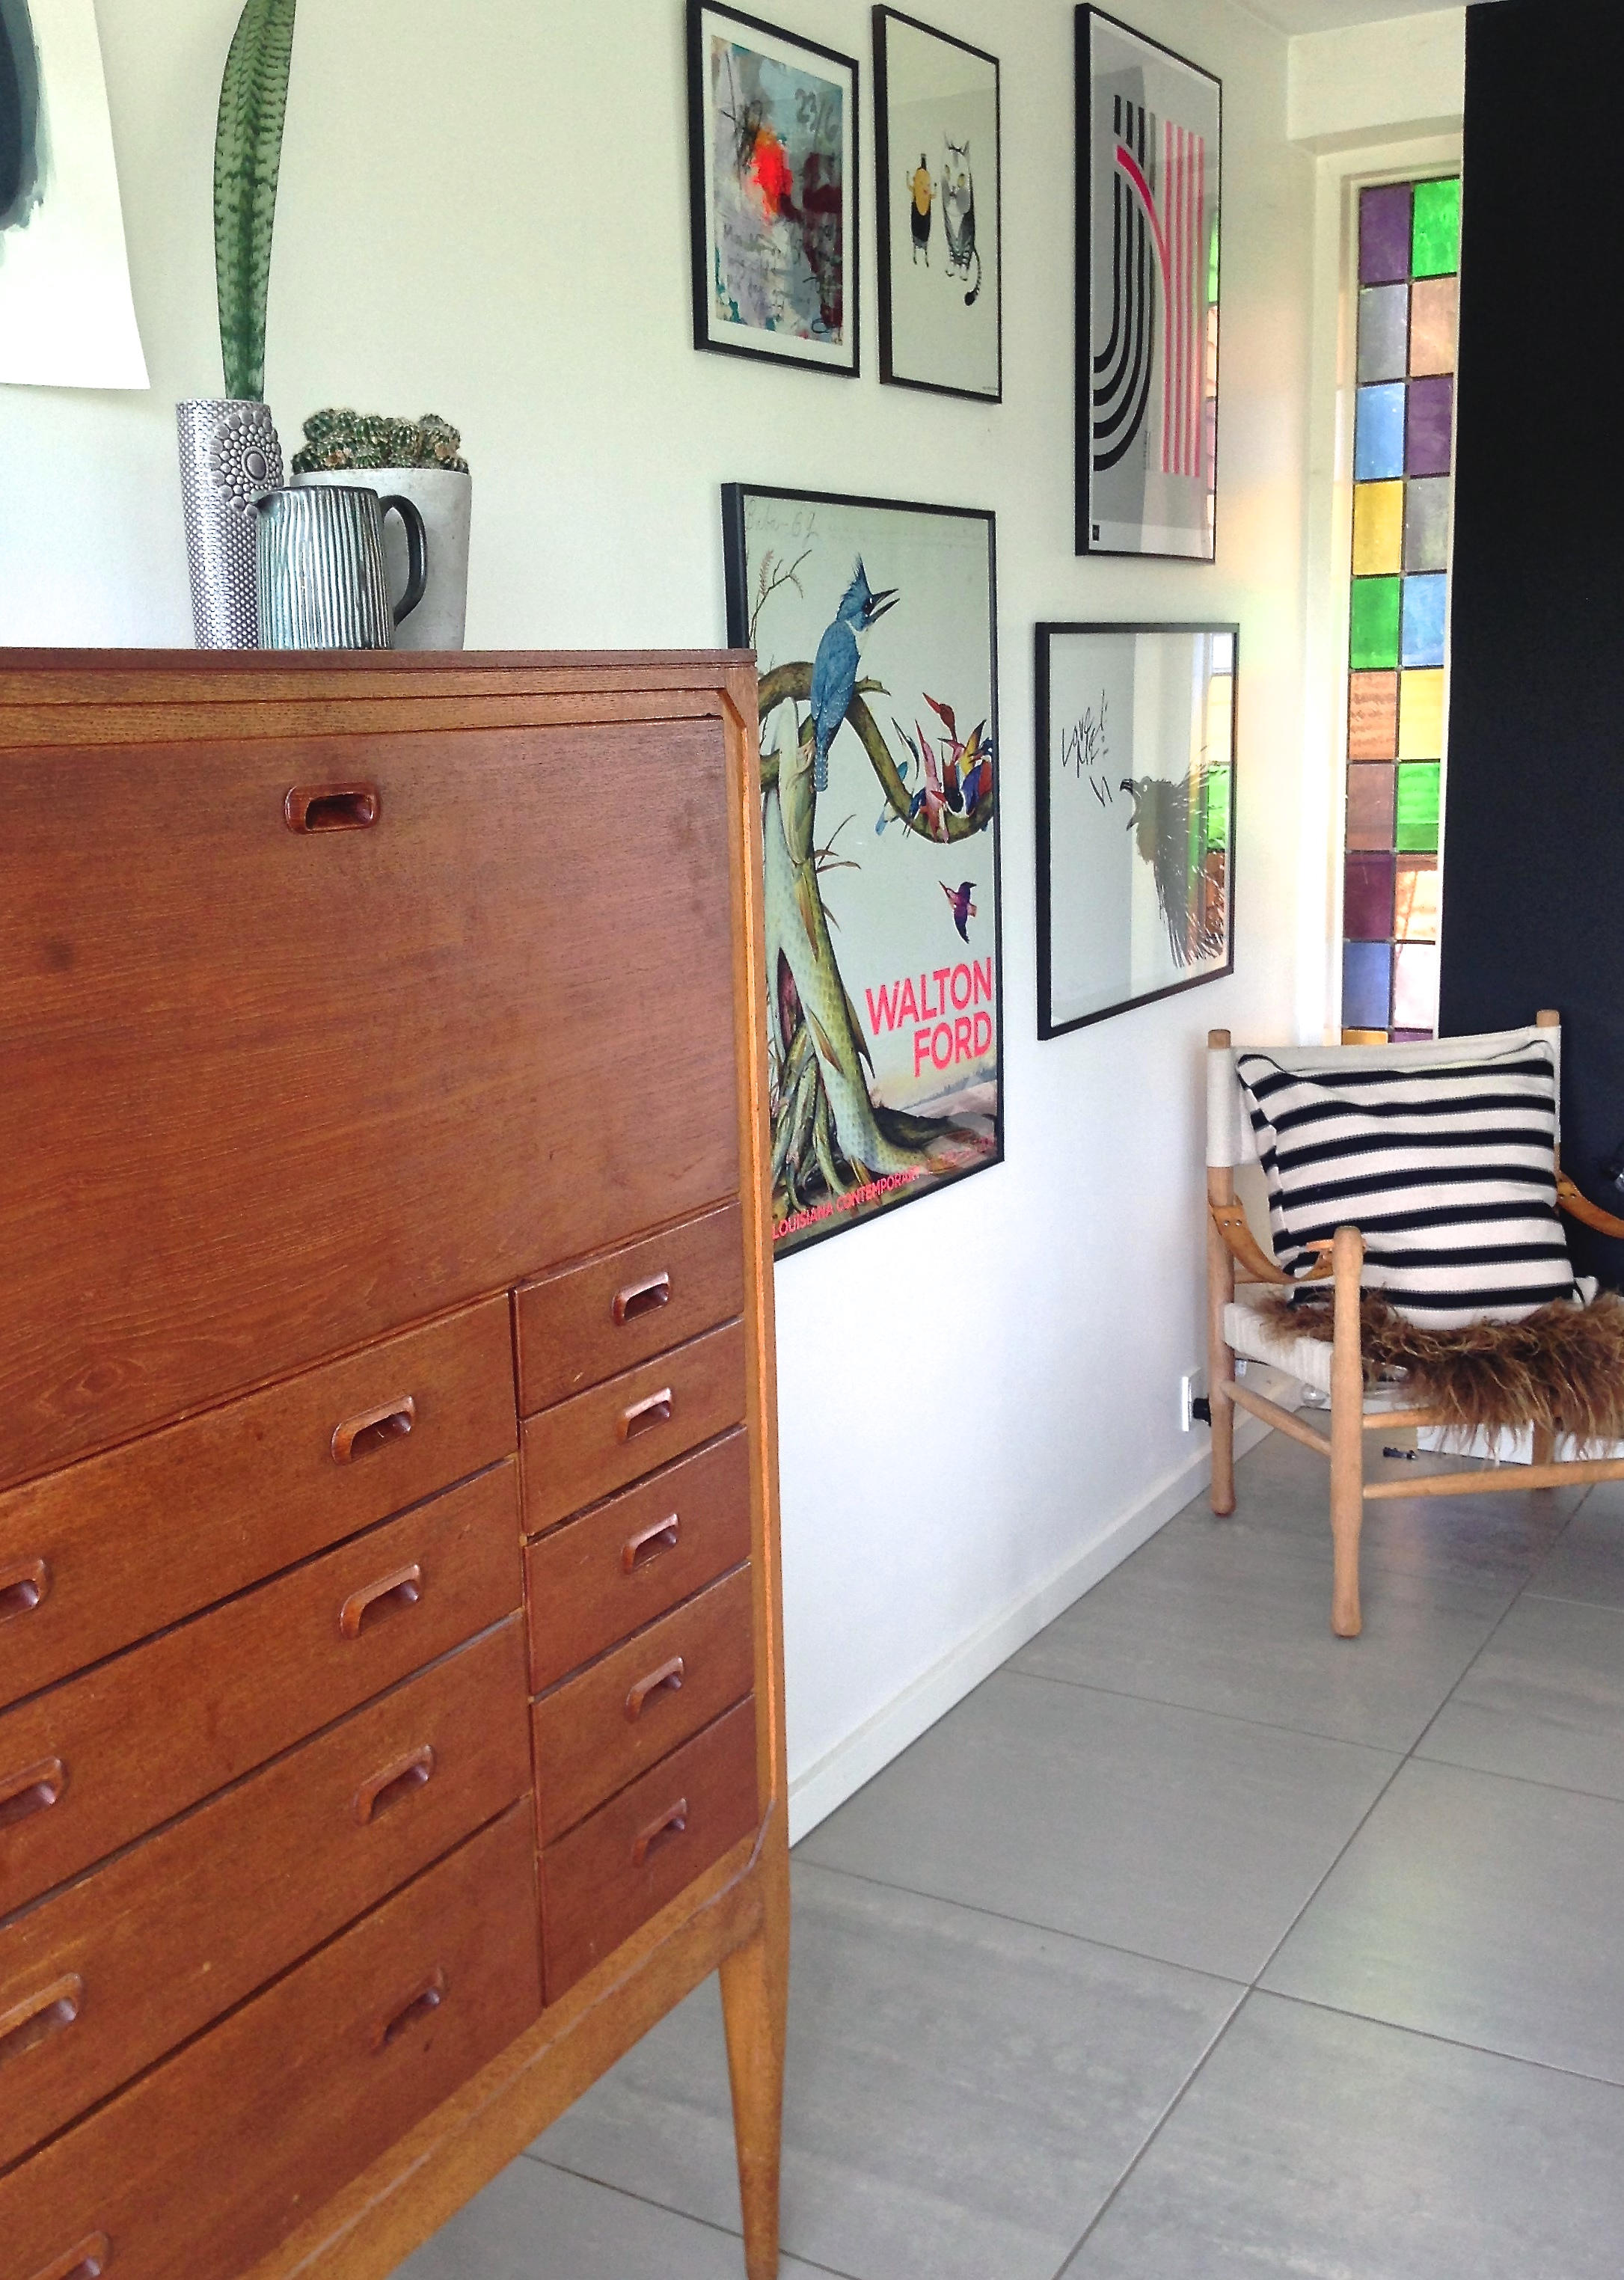 """""""The first furniture my grandmother bought (before she met my granddad) were designs from some of the greatest designers/architects in Denmark from the 1950´s. I have inherited some chairs and a cabinet from her. I love furniture (especially teak) from the 1950´s but also German Bauhaus interior."""" The eclectic collection of artwork throughout the home is amazing. I will never tire of a good gallery wall, we have several in our own house. The original stained glass is the perfect addition to this corner.Those colours make me smile."""